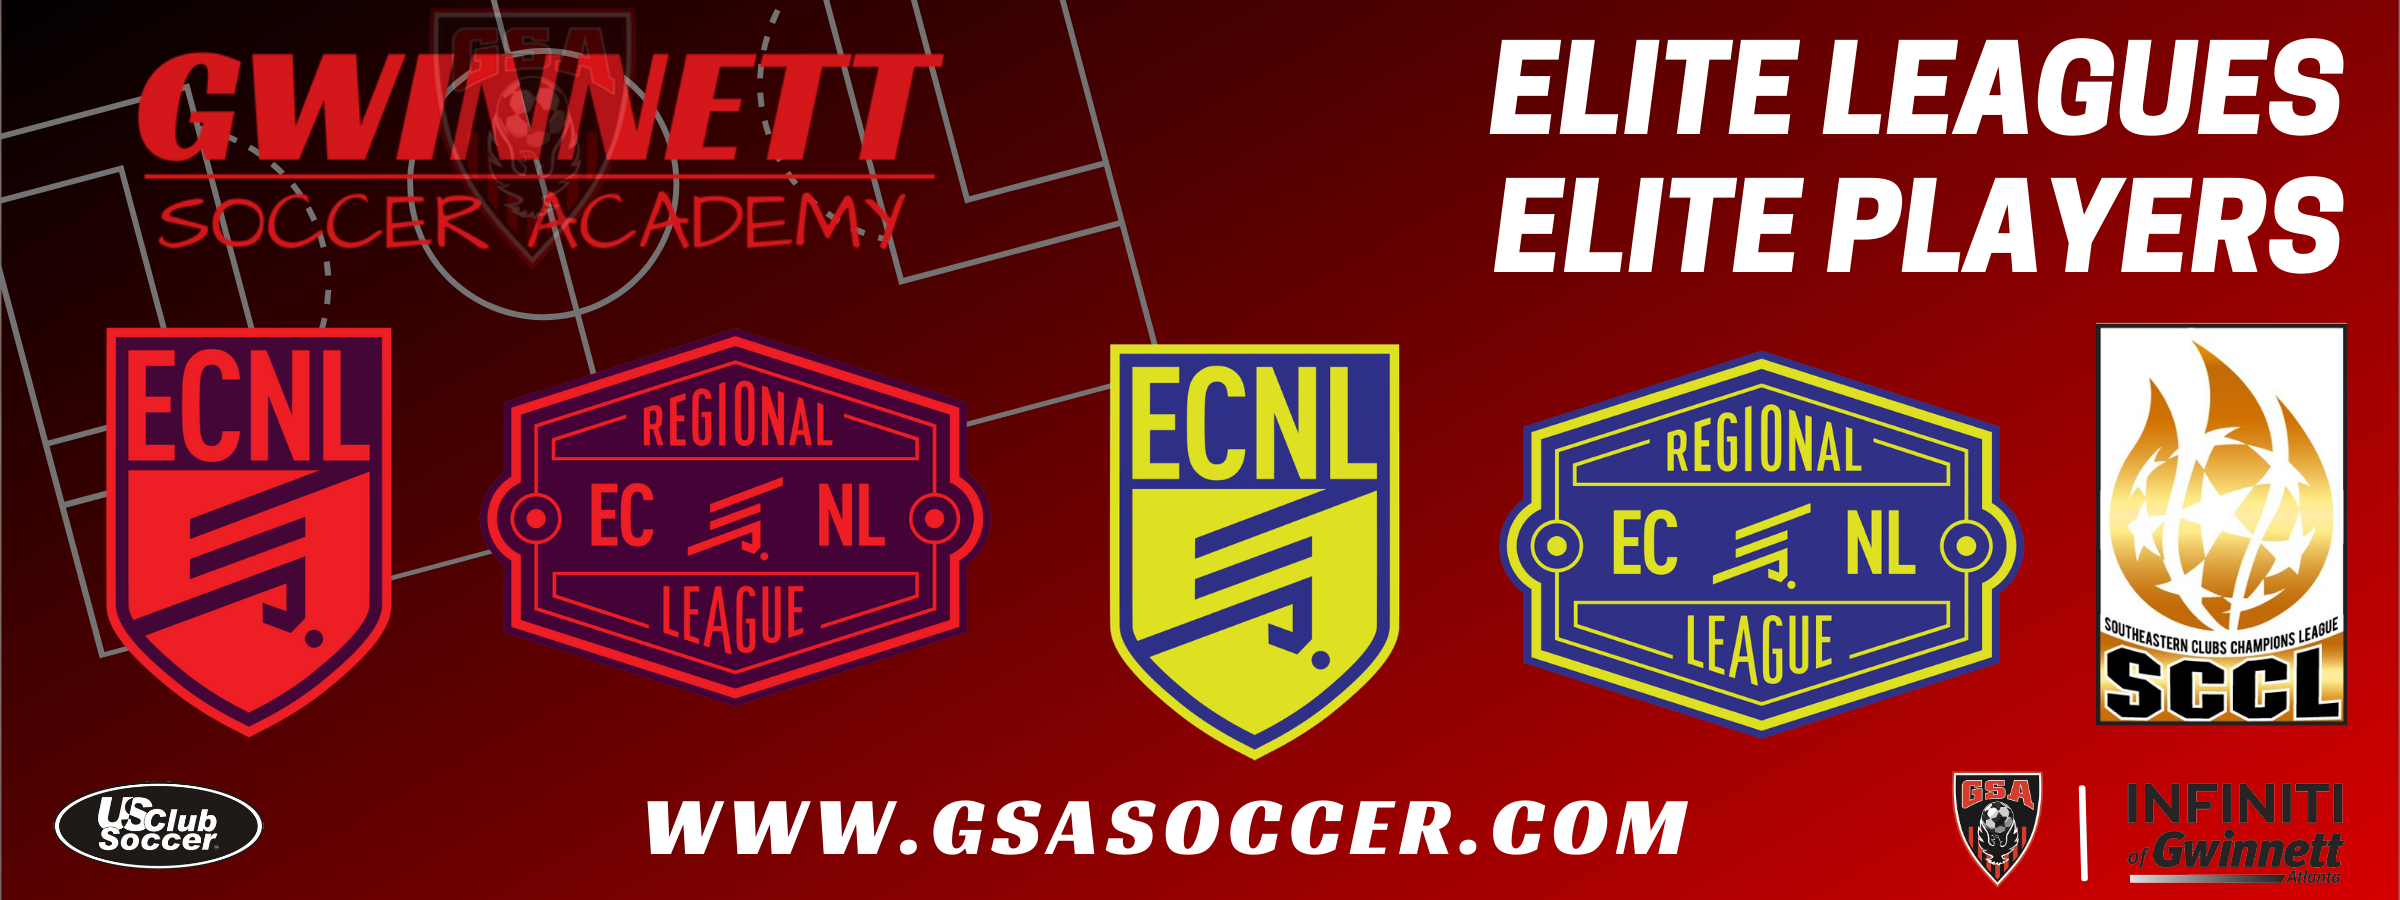 Elite Leagues ID Clinic - May 2nd, 2021